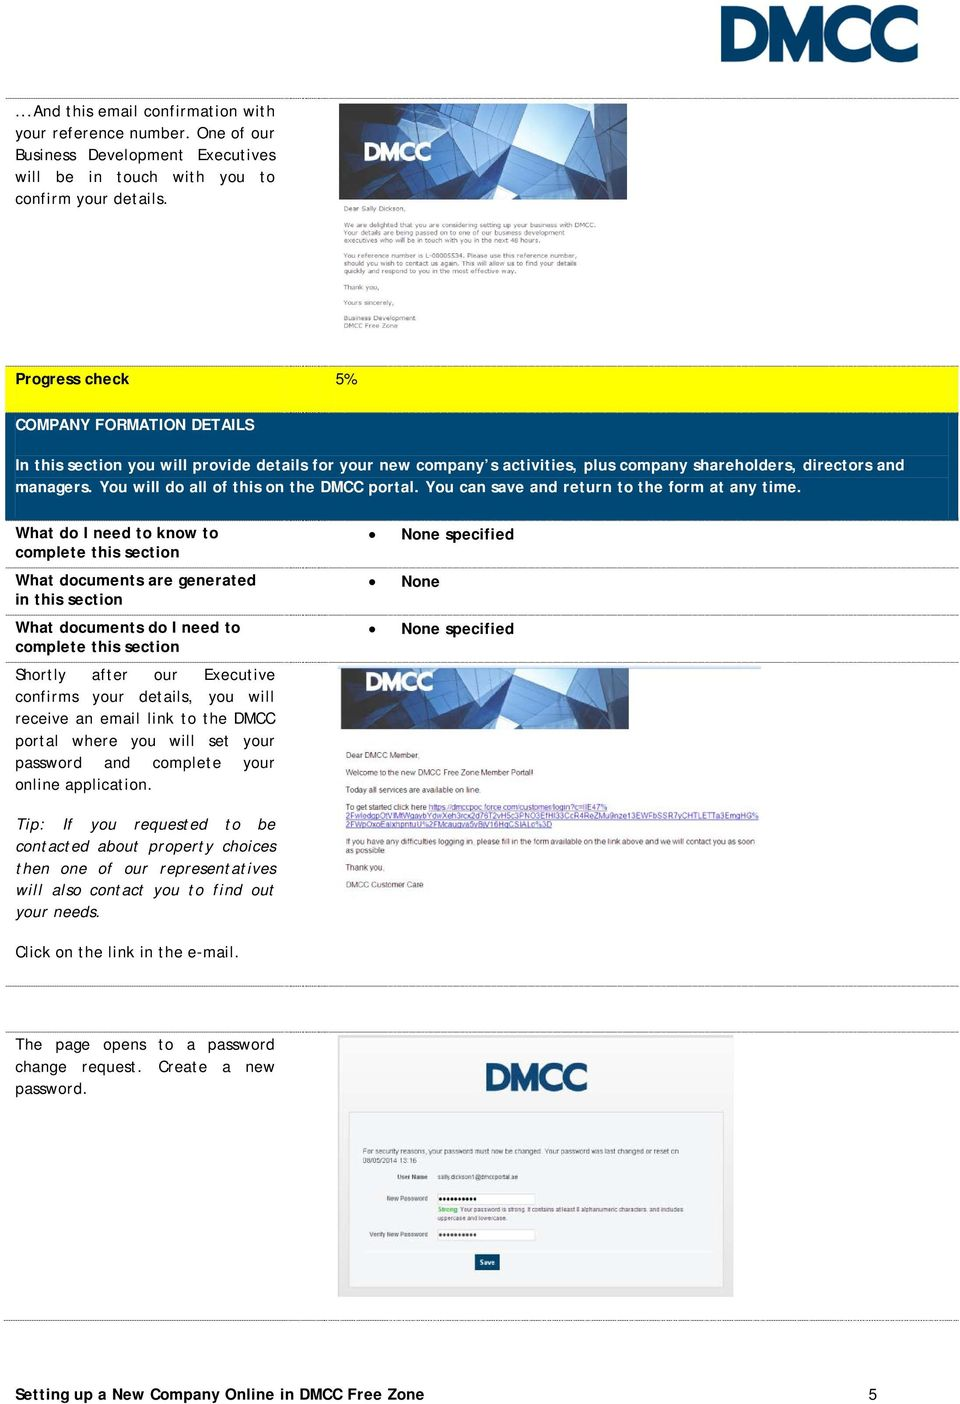 Setting up a New Company Online in DMCC Free Zone  Anyone